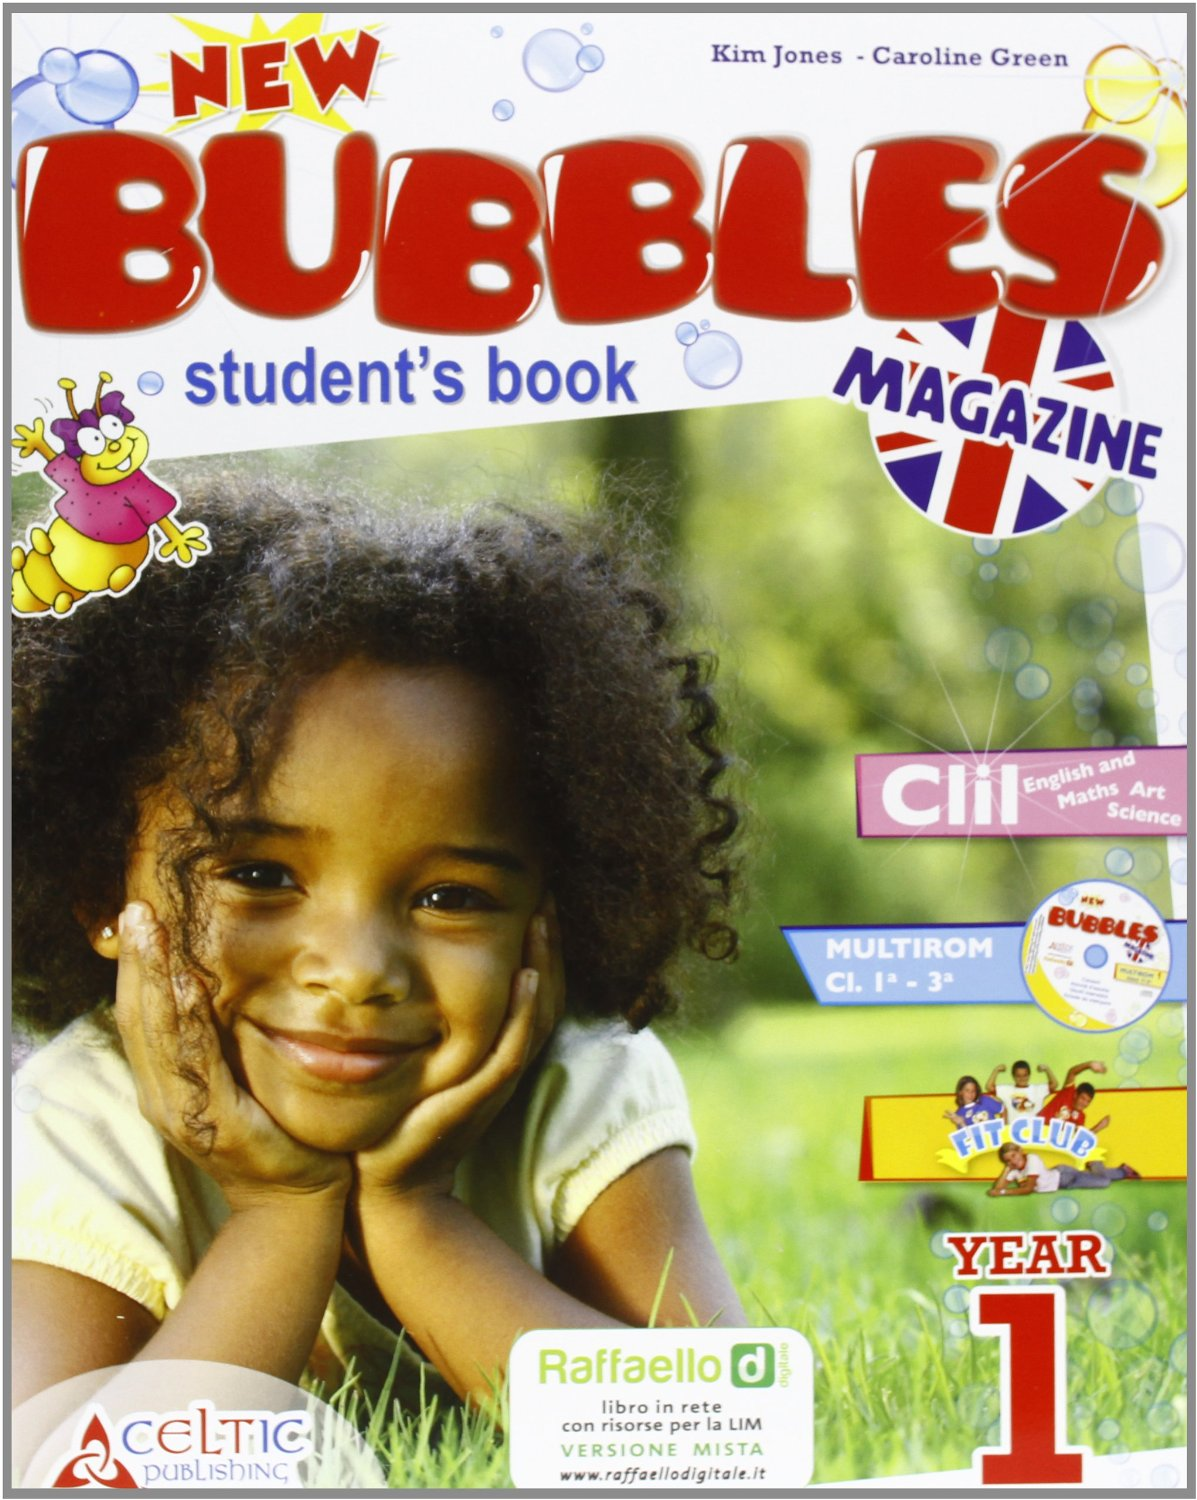 New bubbles magazine